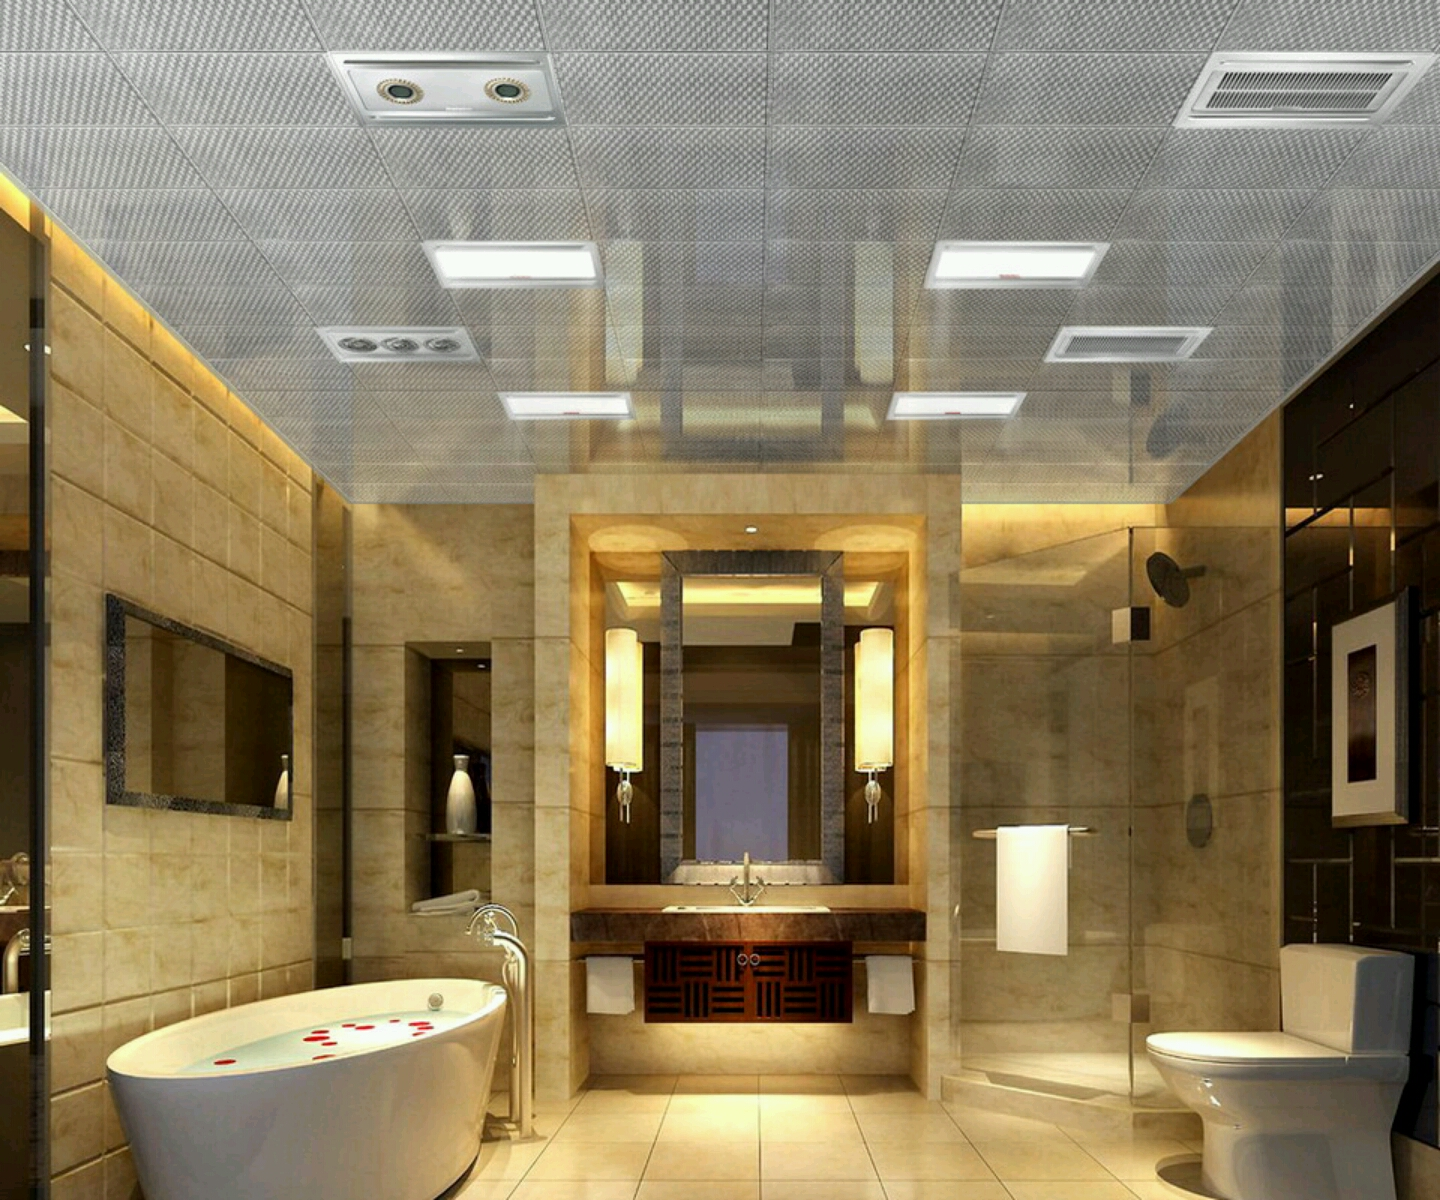 New home designs latest luxury bathrooms designs ideas for Bathroom designs